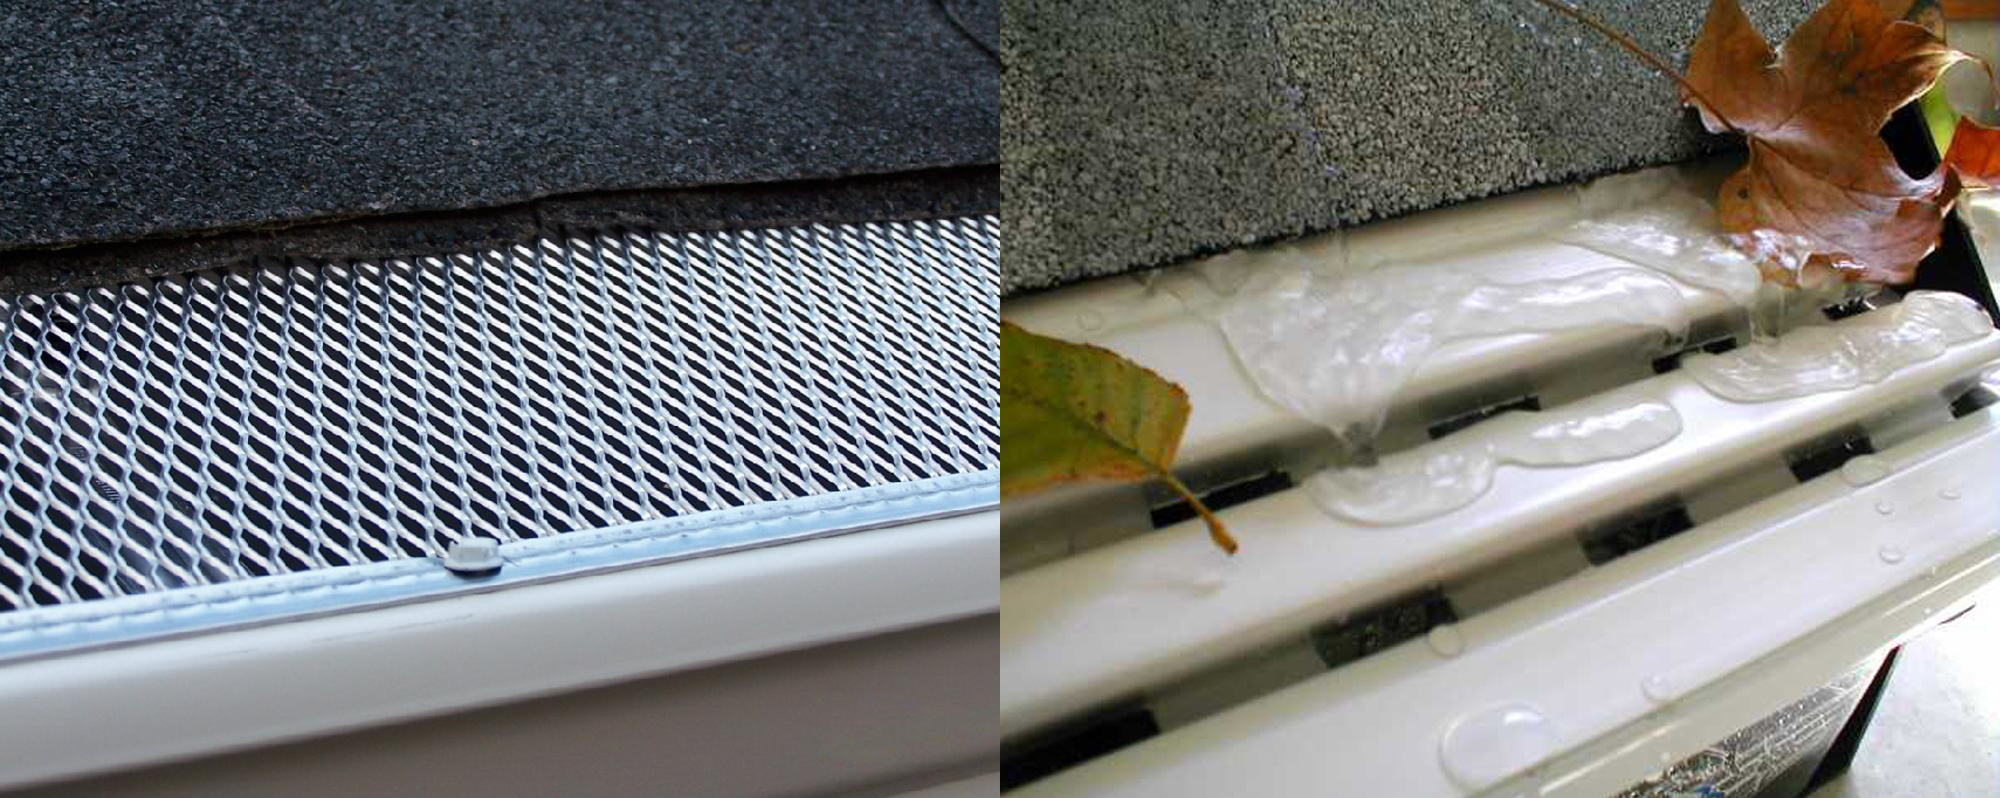 Gutter Guards Cleaning Services Keltom Gutters